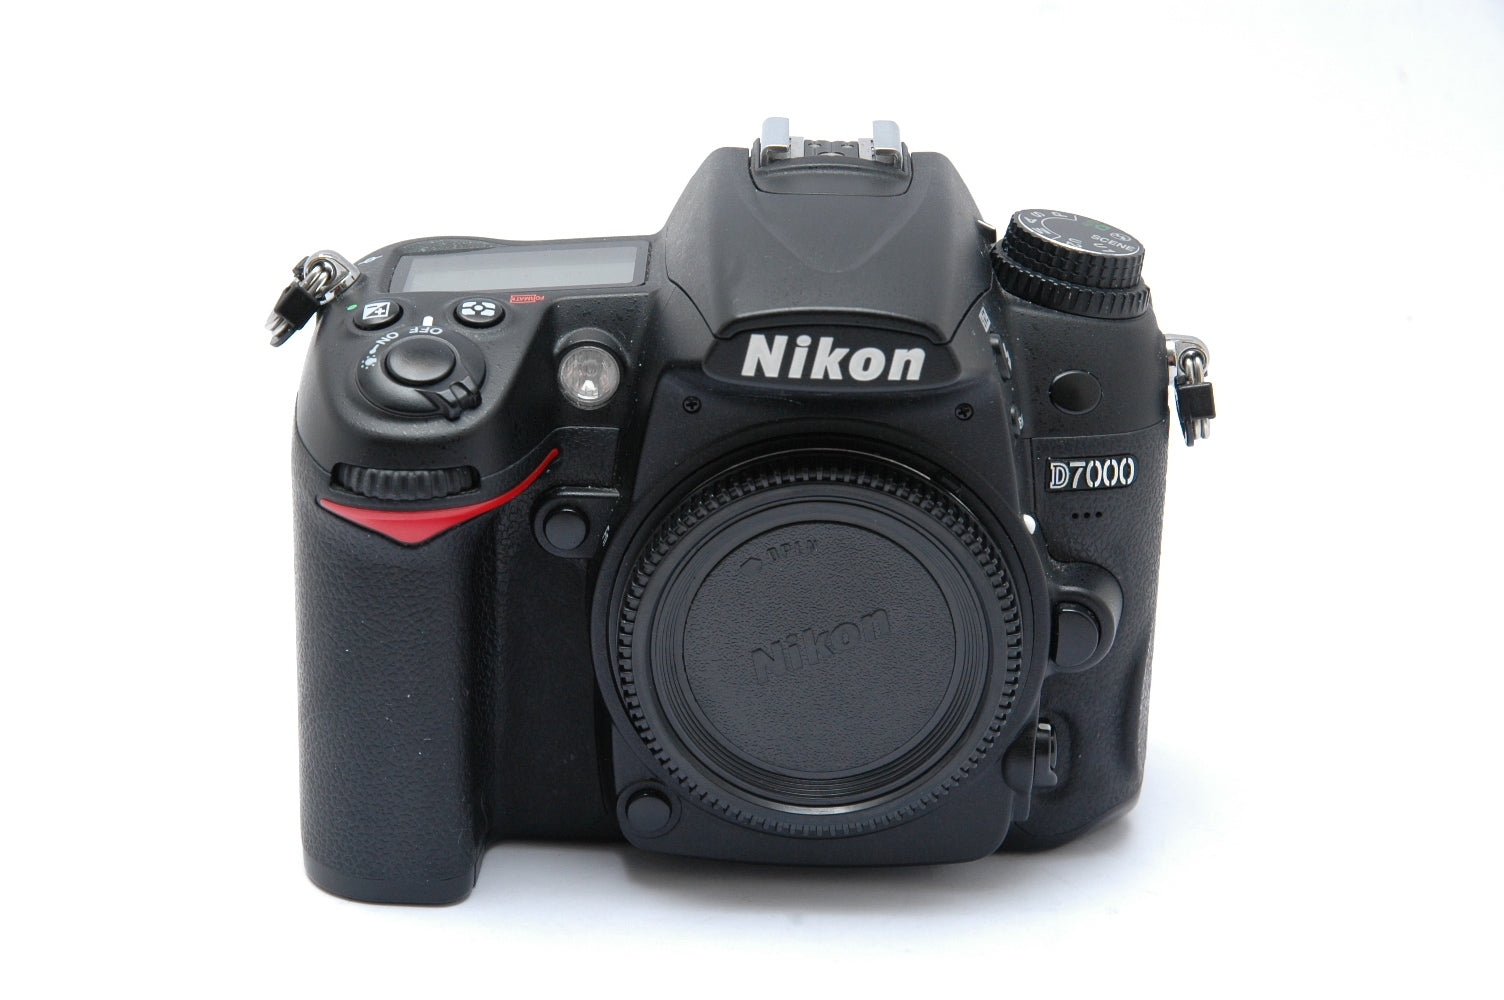 Used Nikon D7000 Digital SLR Camera Body